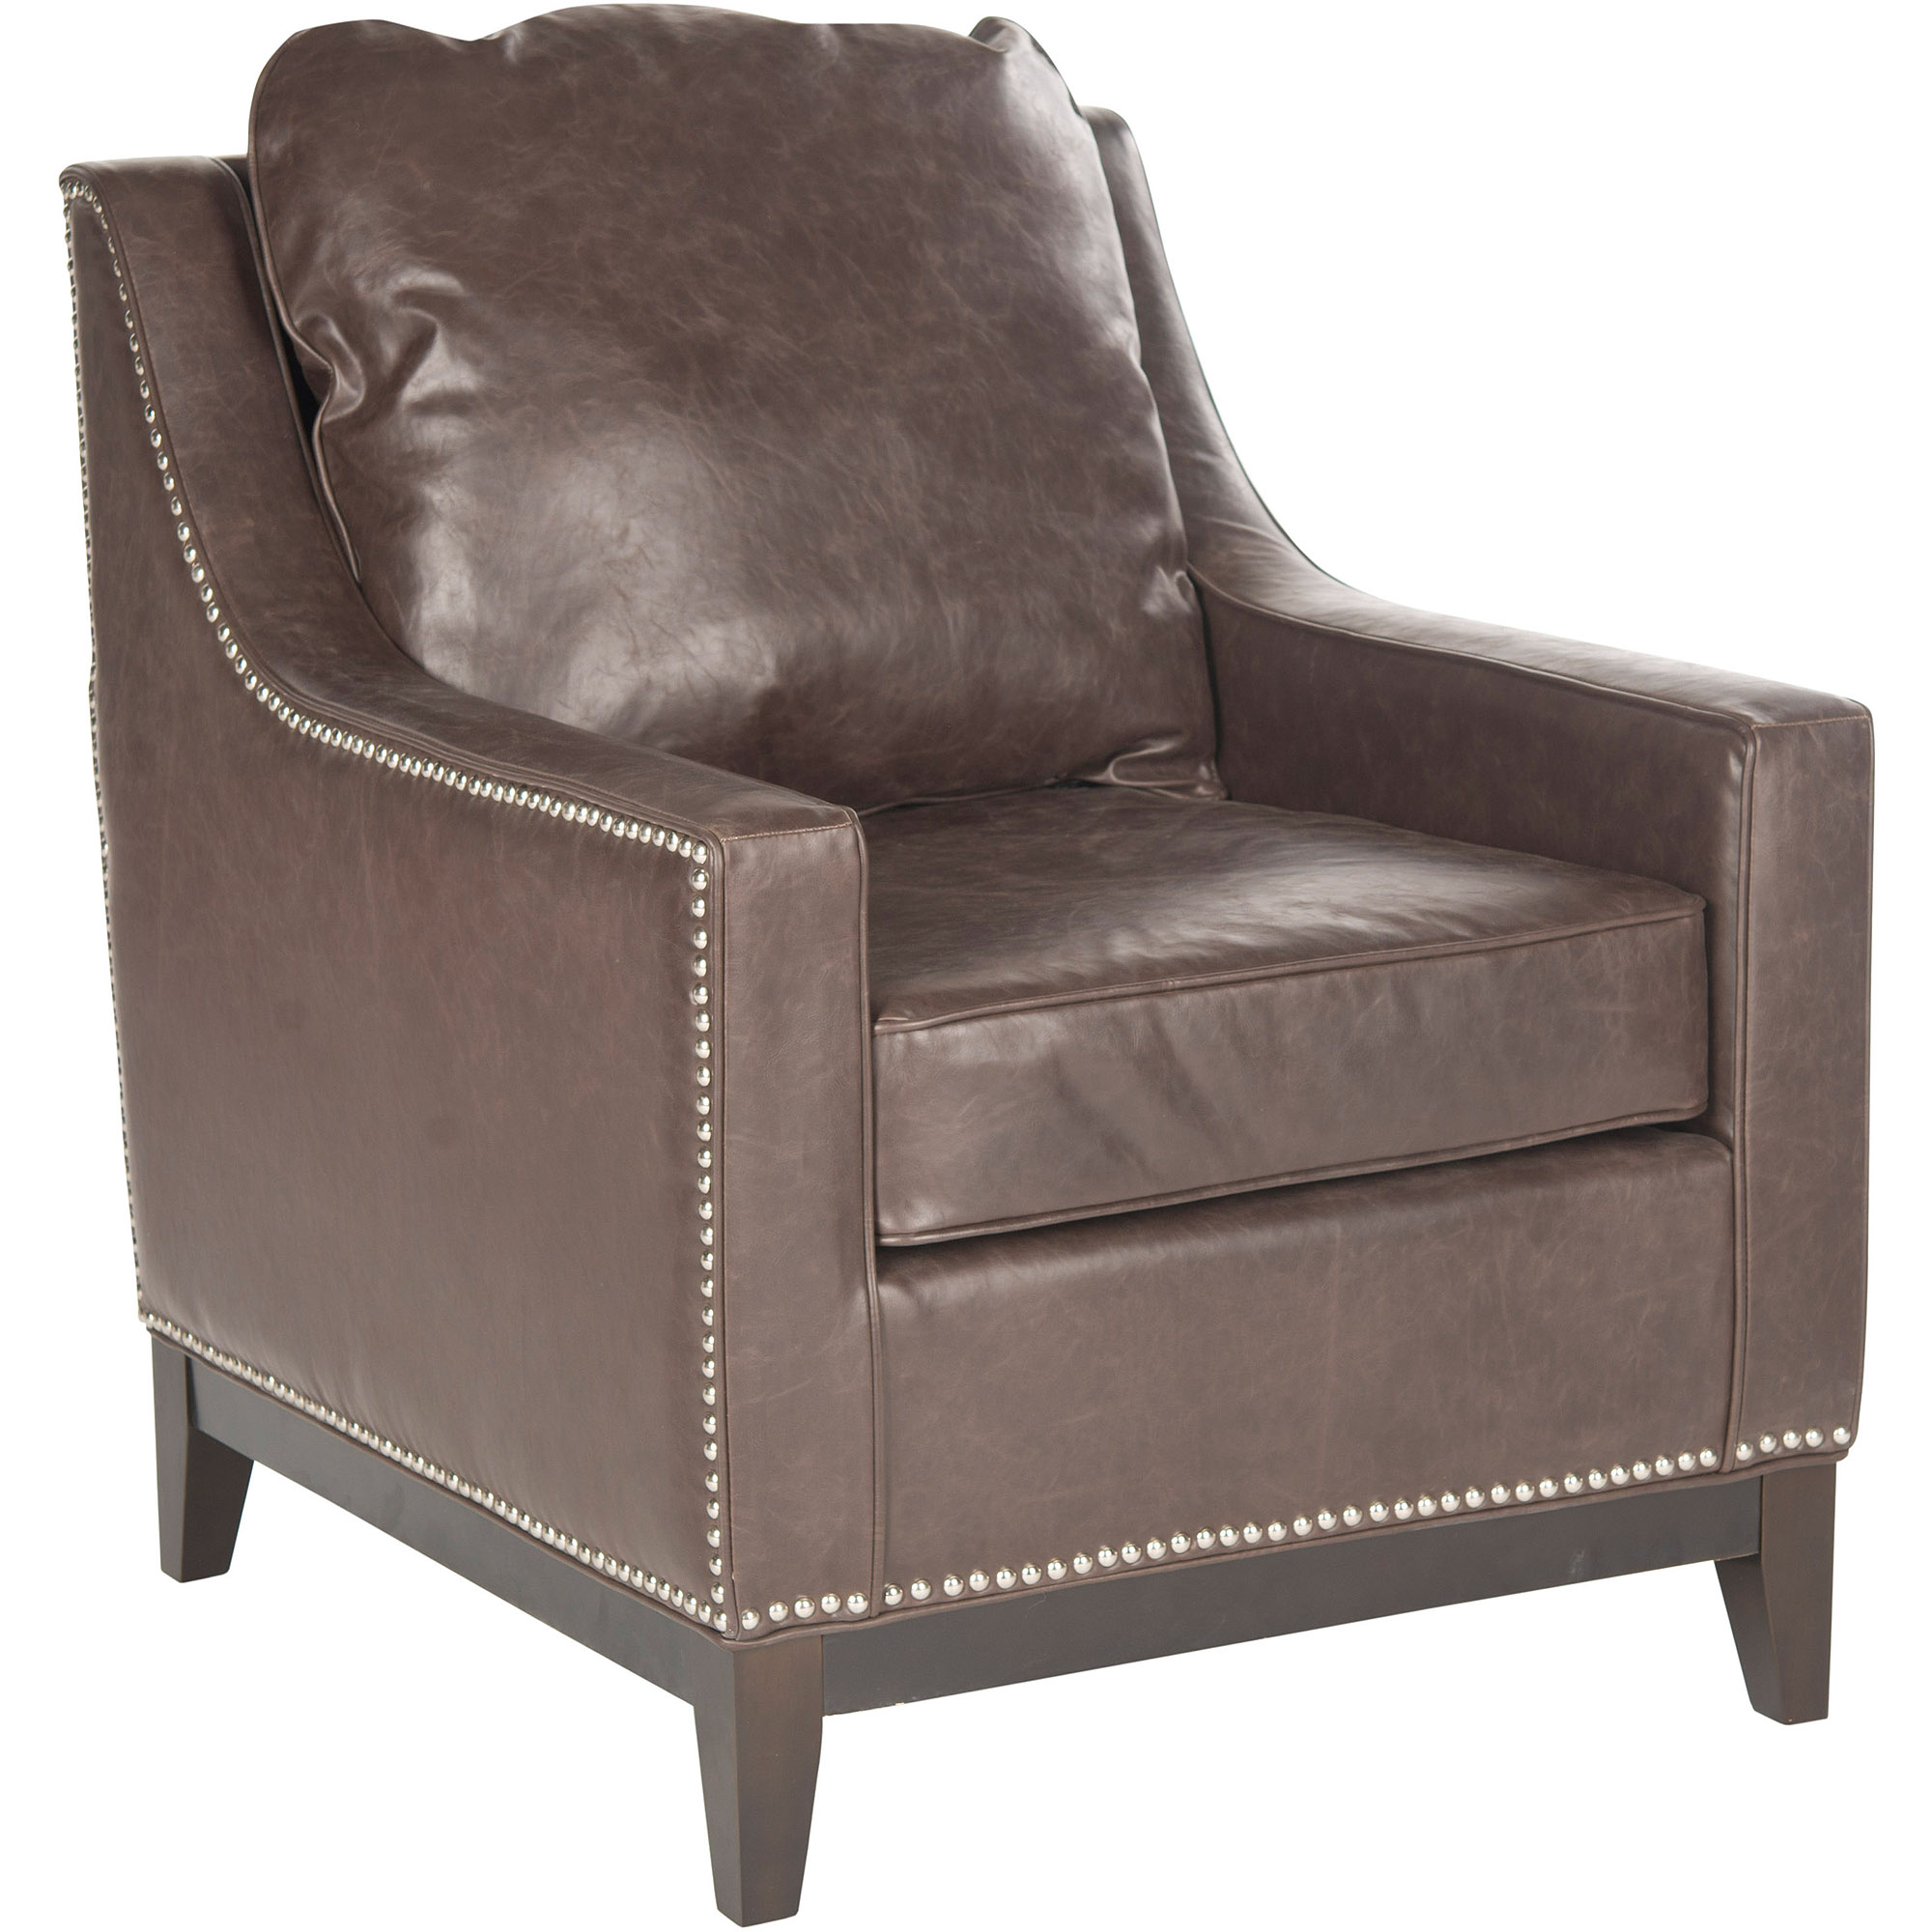 Safavieh Colton Bicast Leather Club Chair, Antique Brown